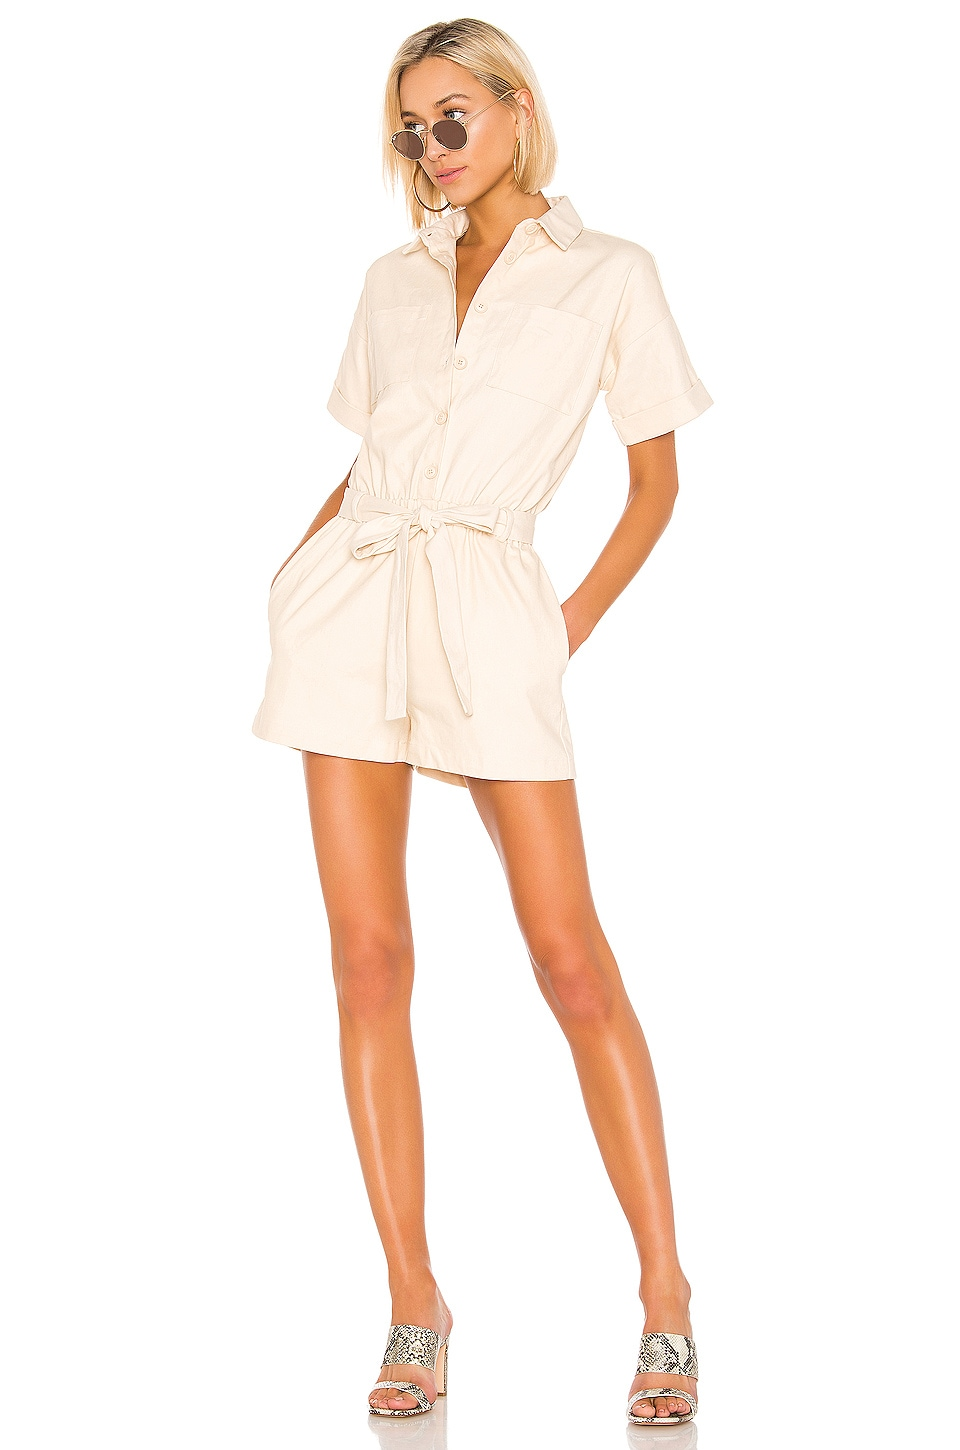 Line & Dot Roi Romper in Cream